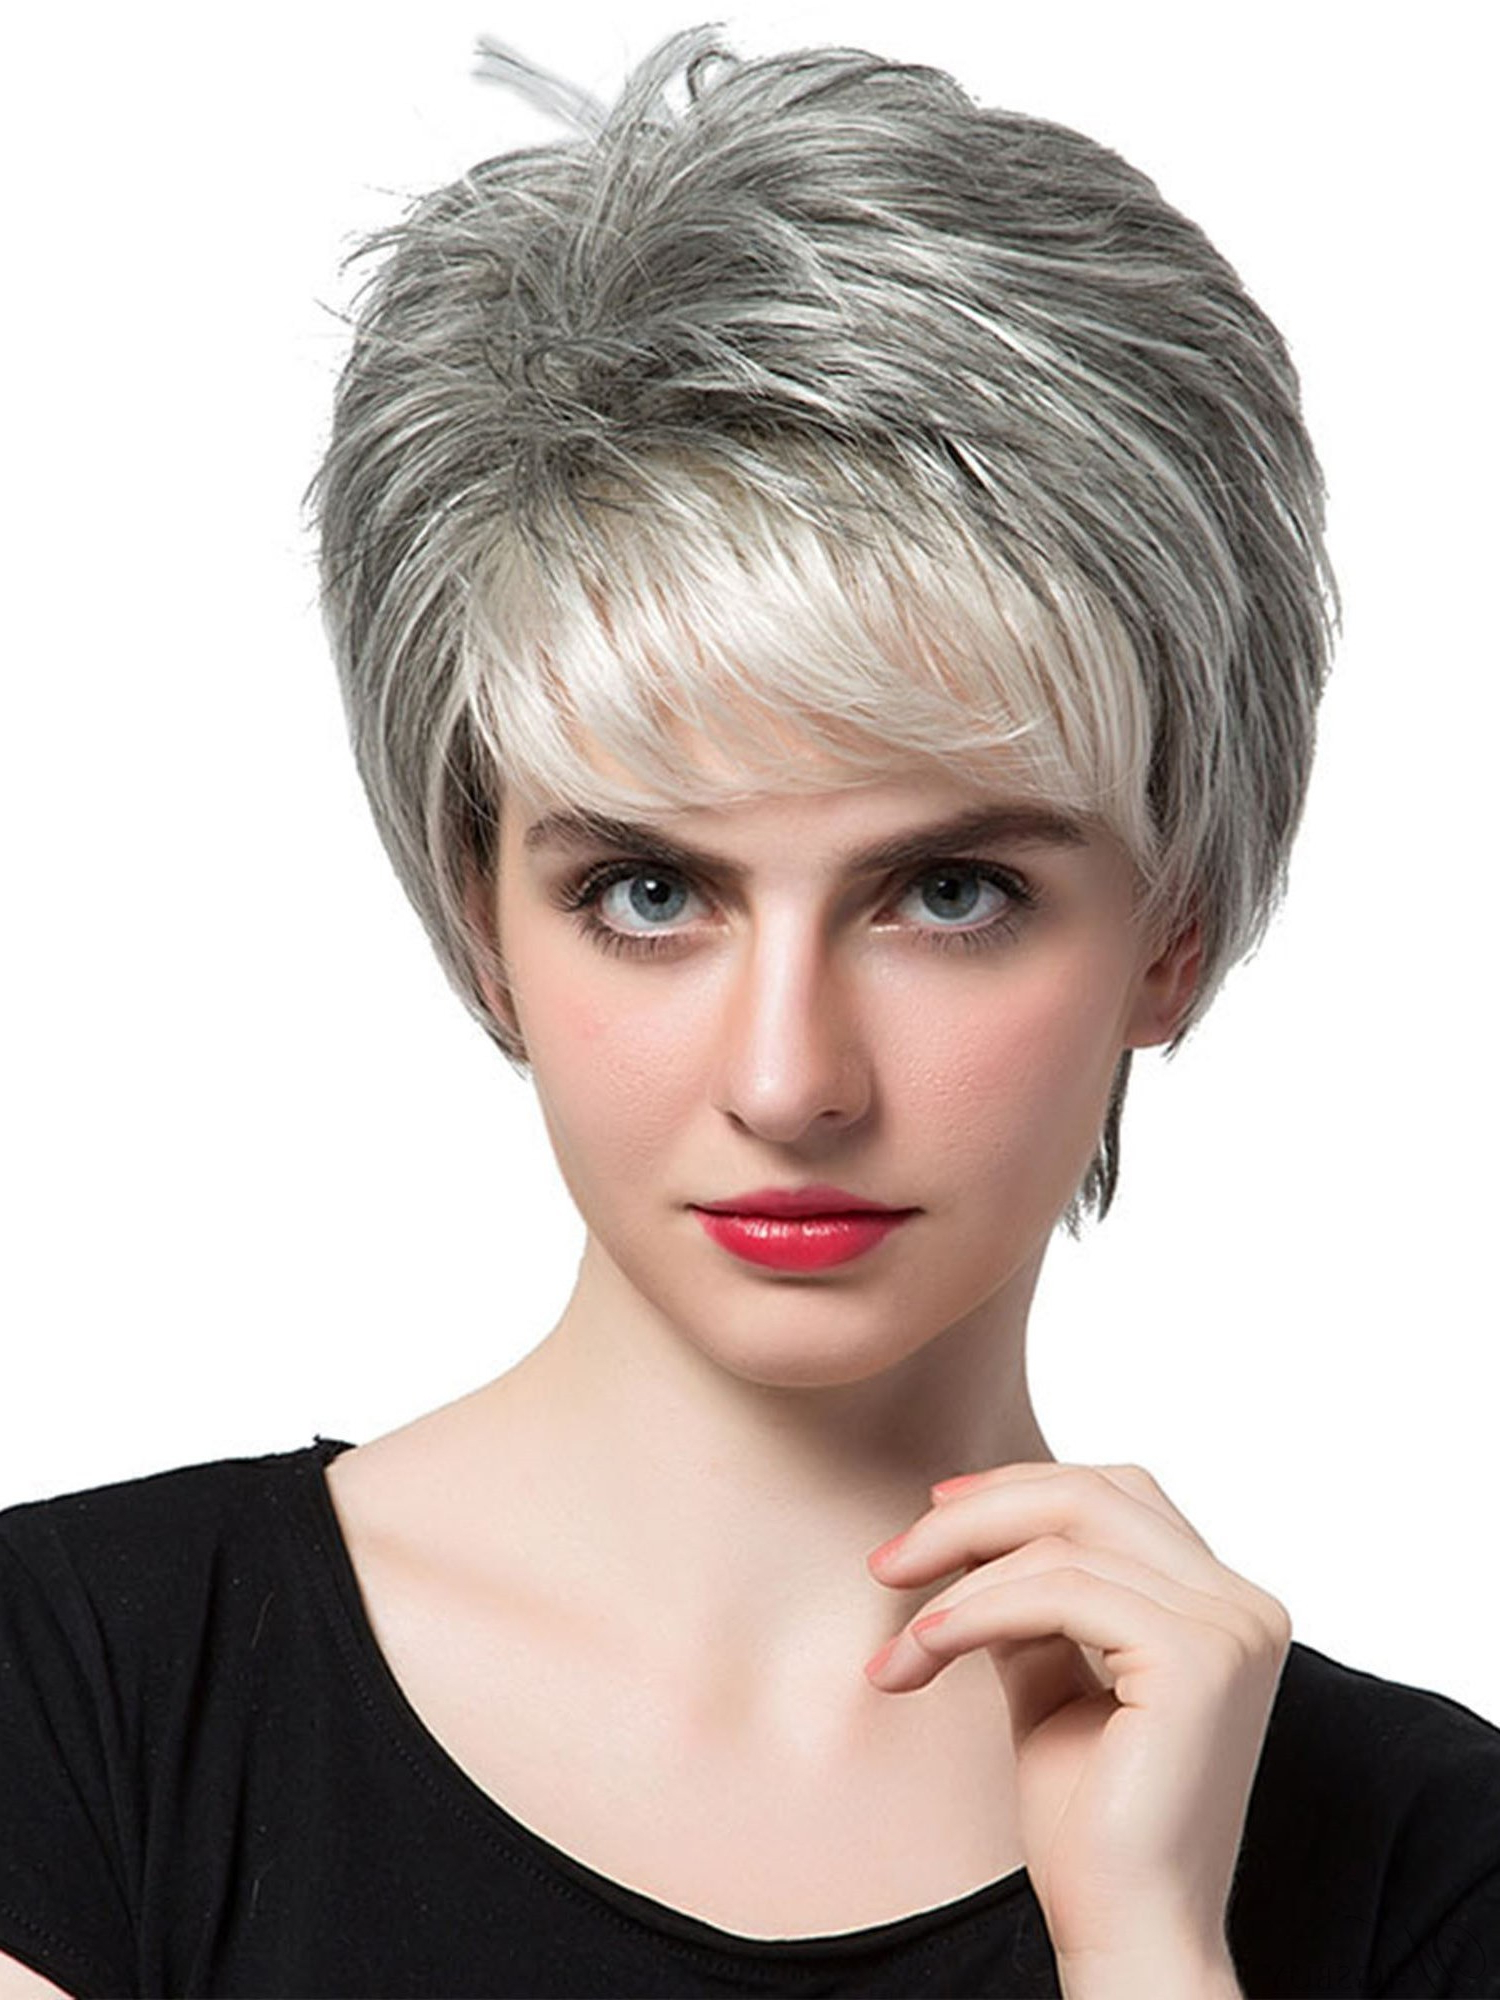 Salt And Pepper Short Straight Capless Wigs With Bangs Human Hair Pertaining To Messy Salt And Pepper Pixie Hairstyles (Gallery 13 of 20)